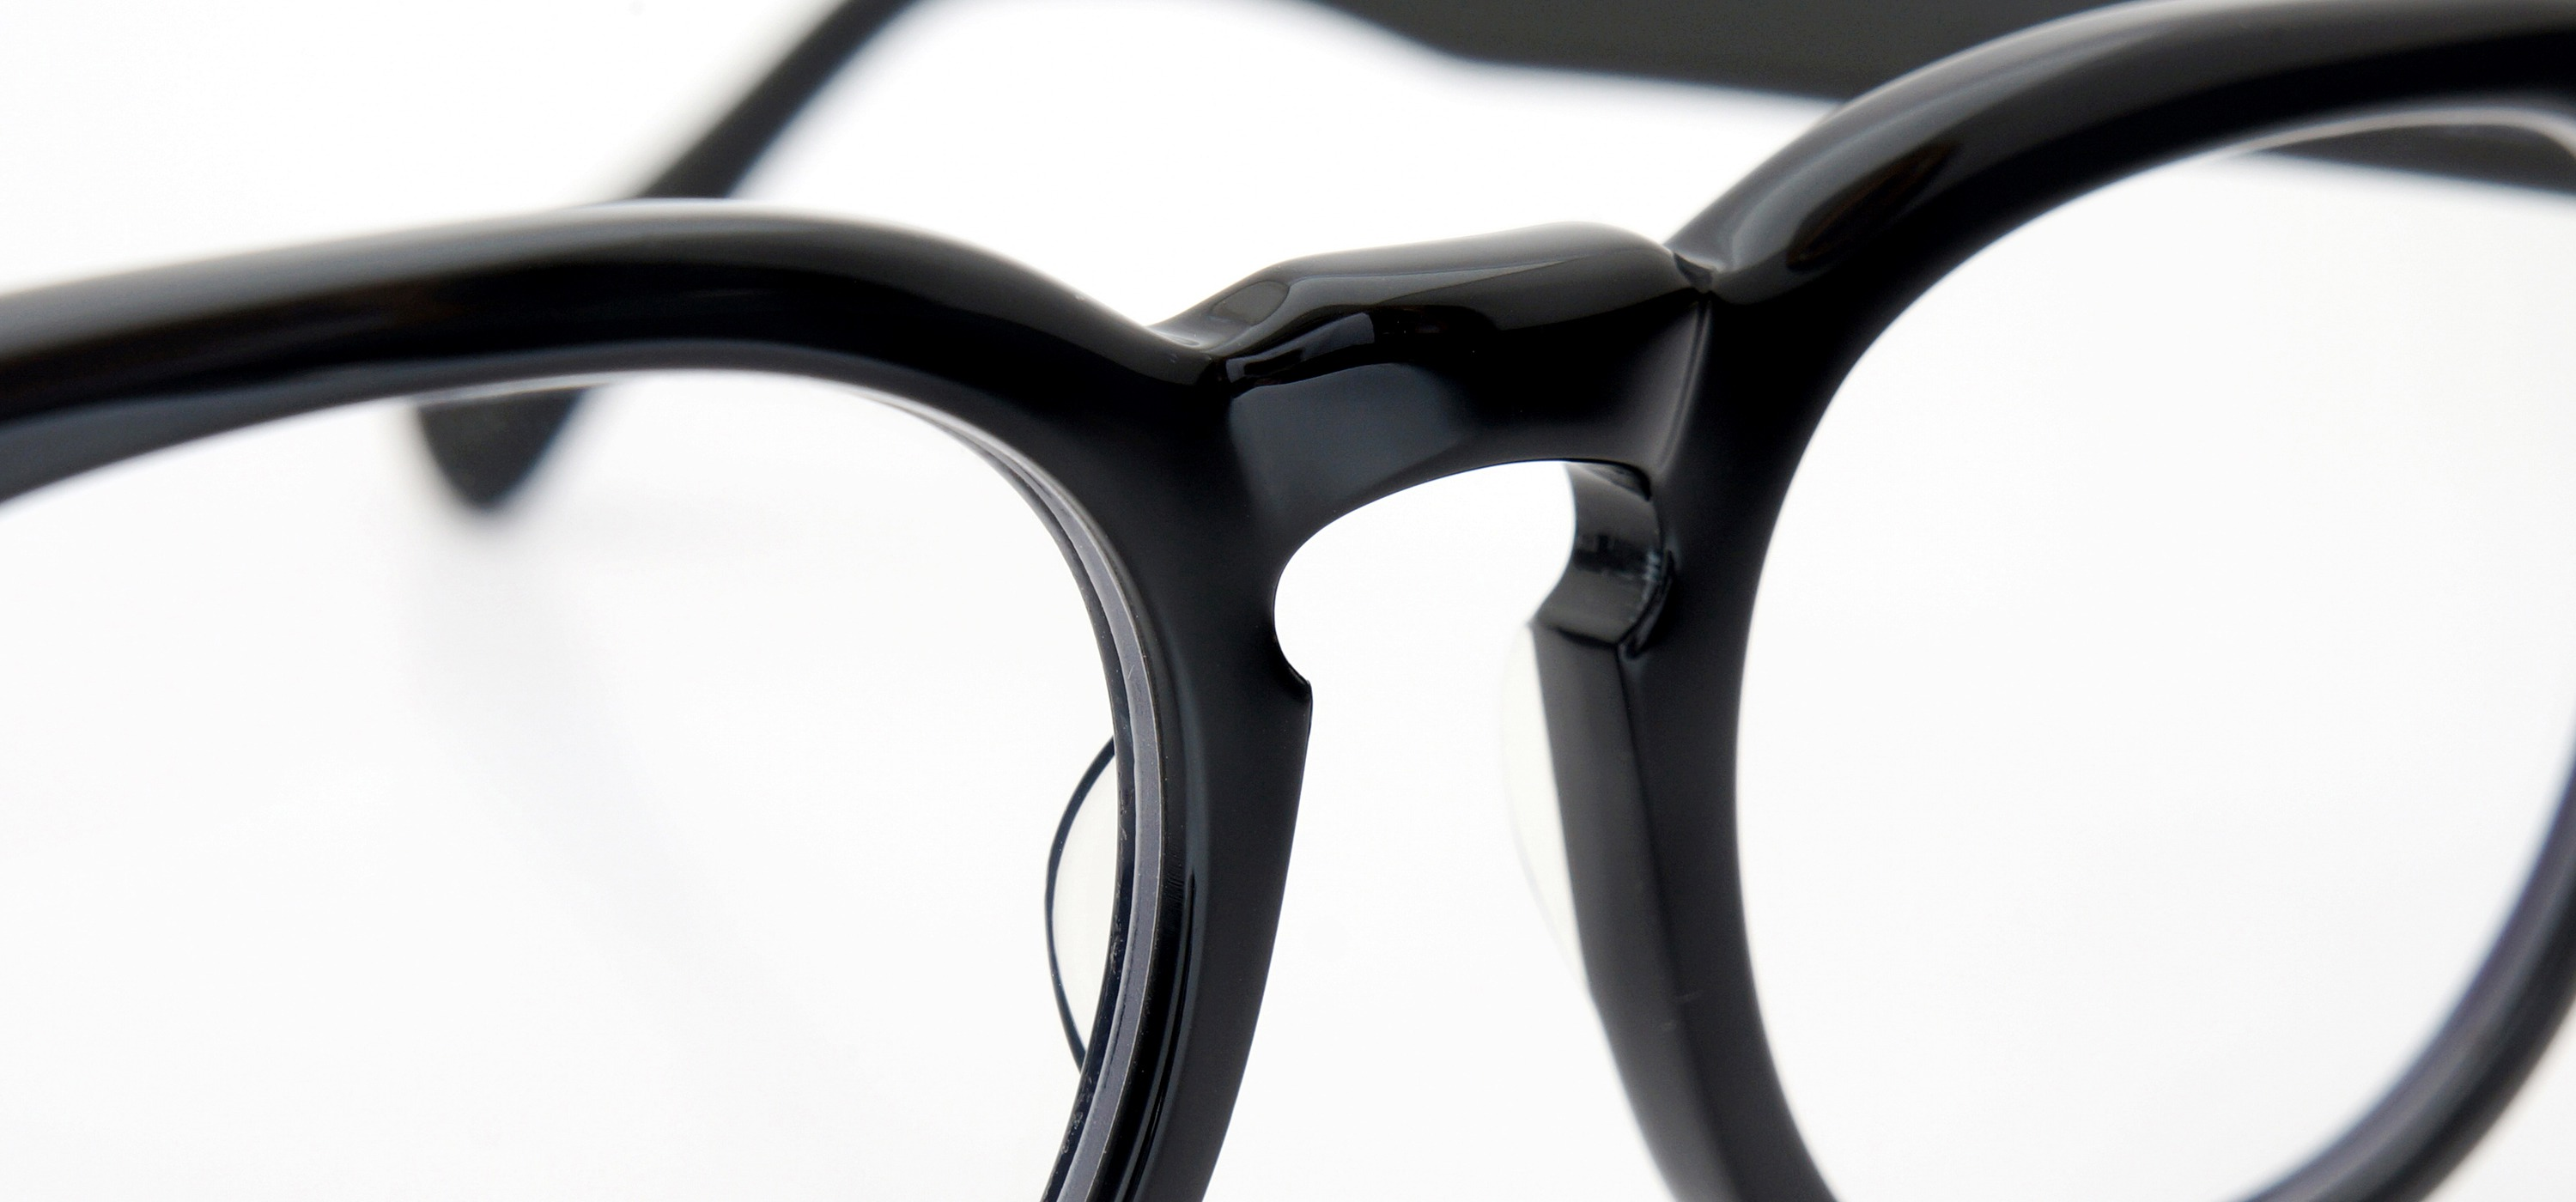 The Spectacle メガネ 1950s-70s TART OPTICAL ARNEL(FRAME USA) BLACK 48-22 イメージ7